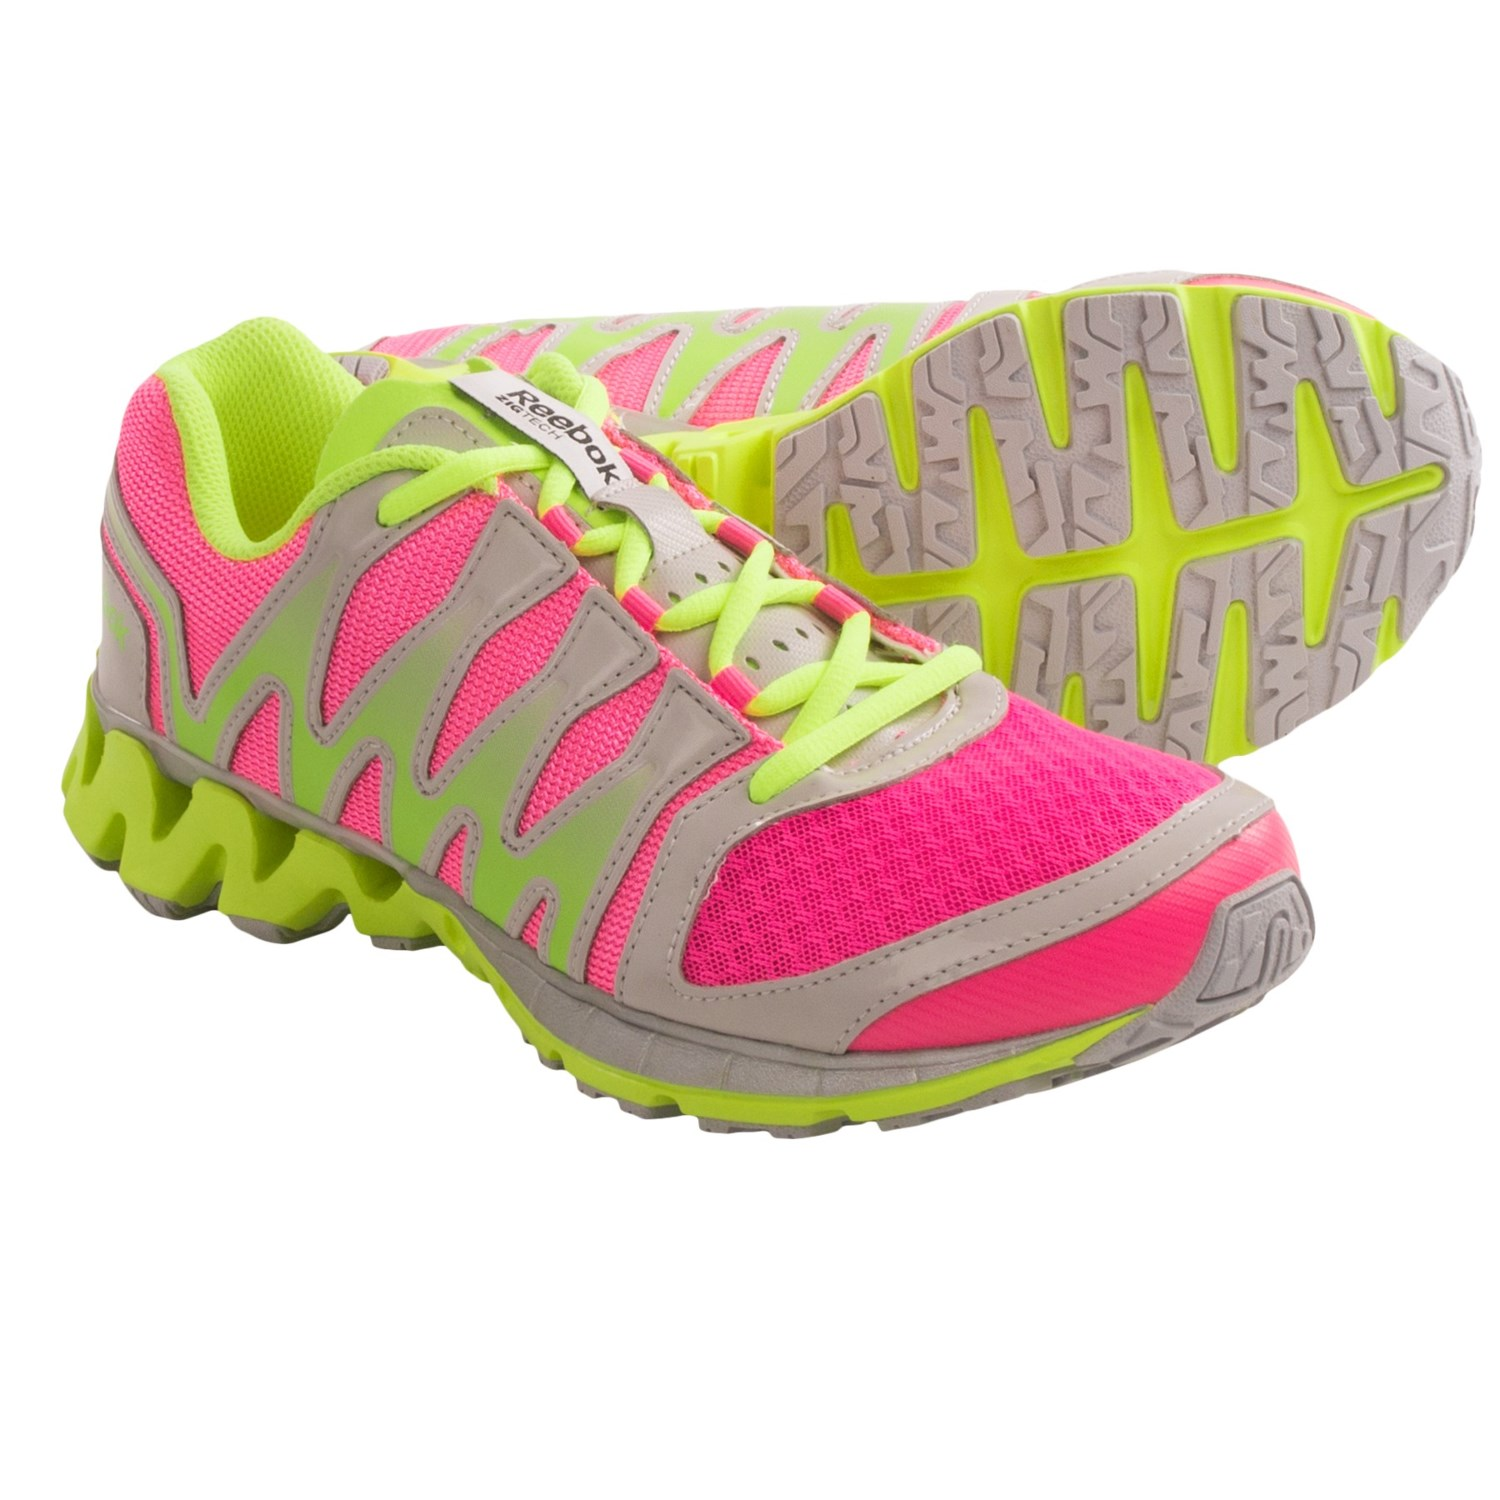 Reebok shoes for women Clothes stores